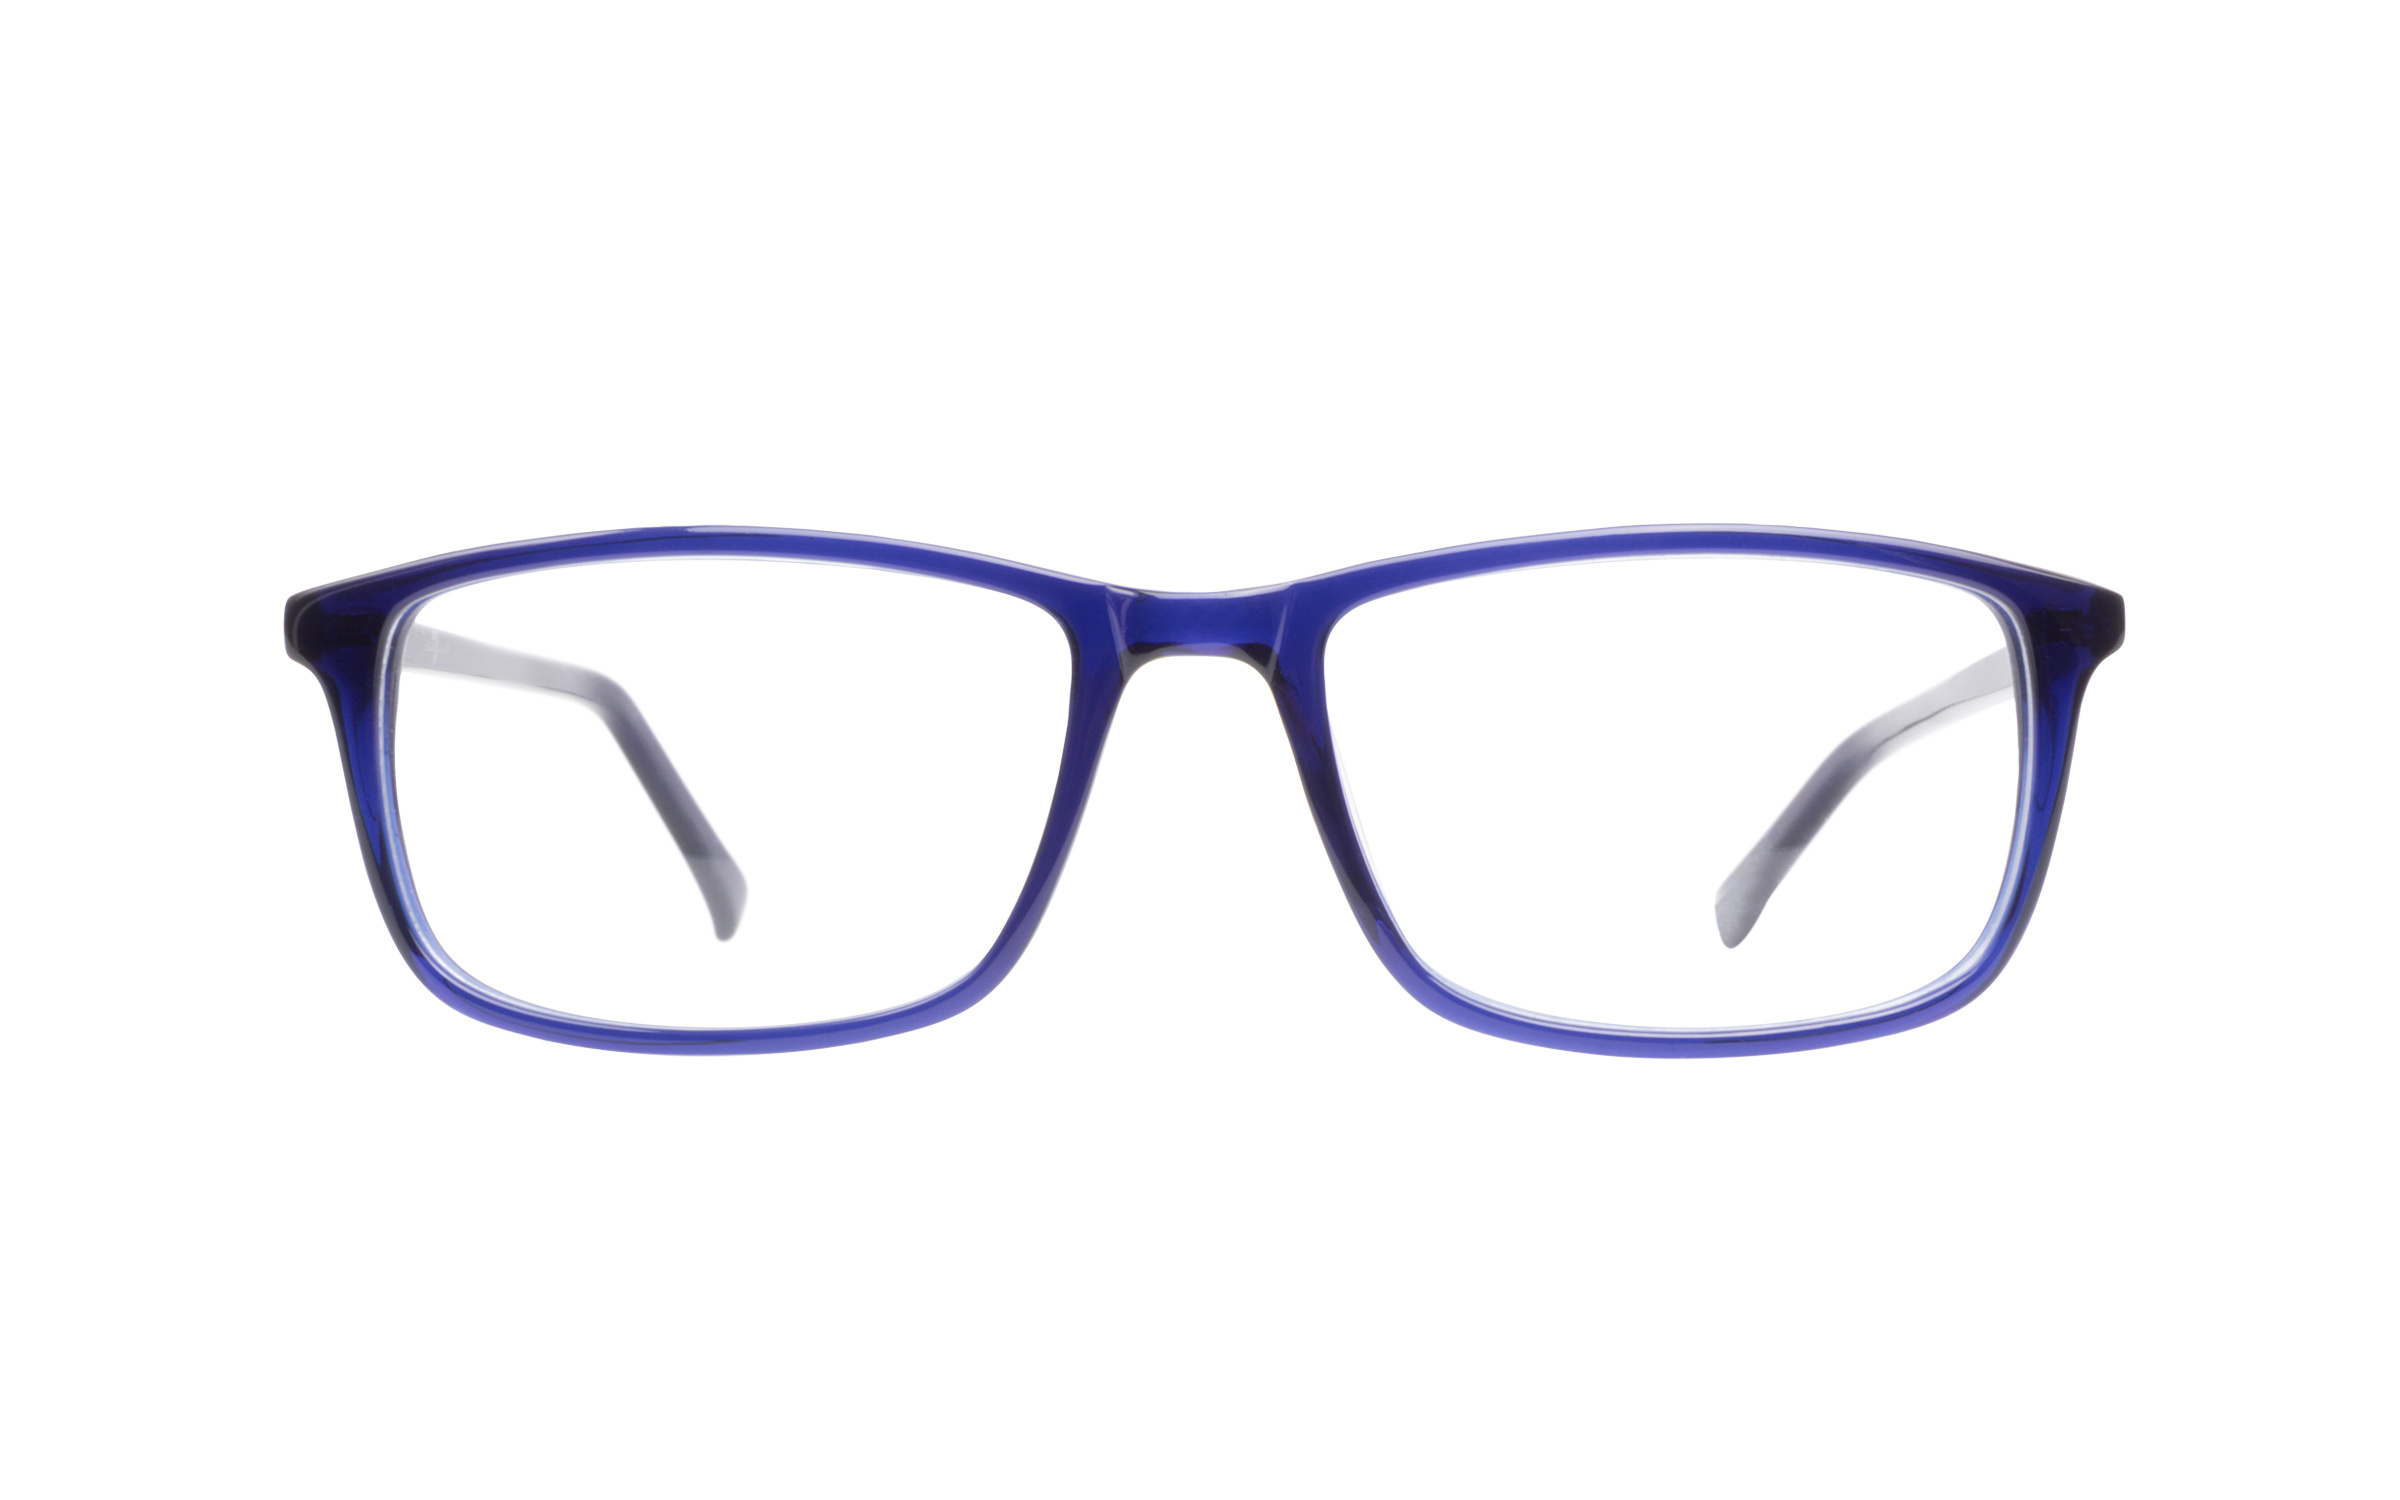 7 For All Mankind 750 Indigo eyeglasses are casually basic. This straightforward rectangular style comes in a deep indigo blue crystal acetate for an understated finish. The thin lightweight temples are polished and unembellished engraved with 7 For All Mankind branding at the tips.